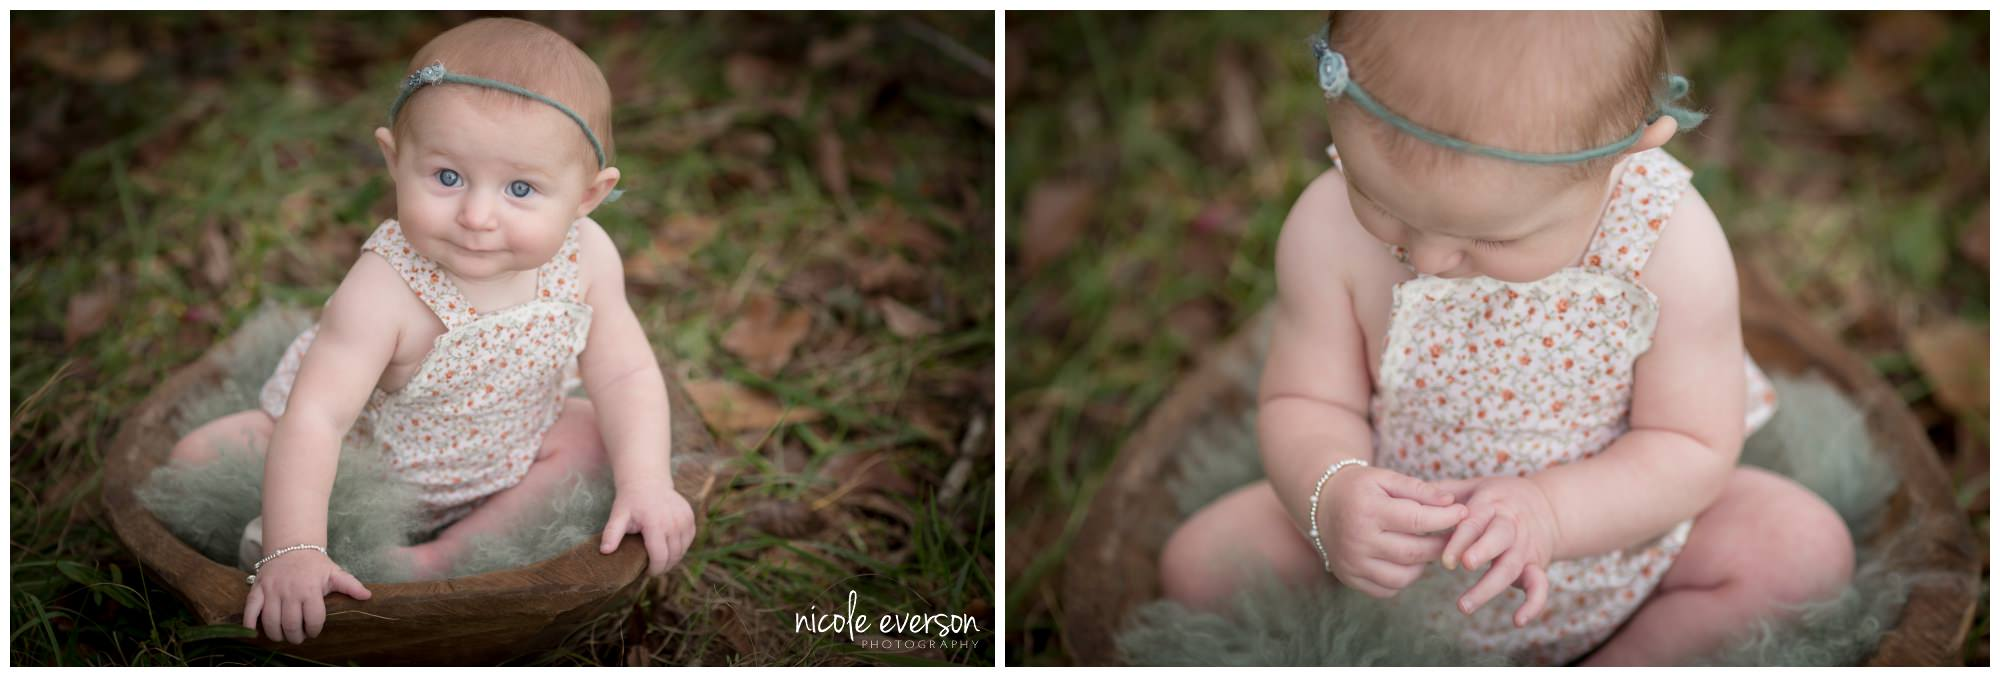 Baby Photographer Tallahassee Florida | Nicole Everson Photography